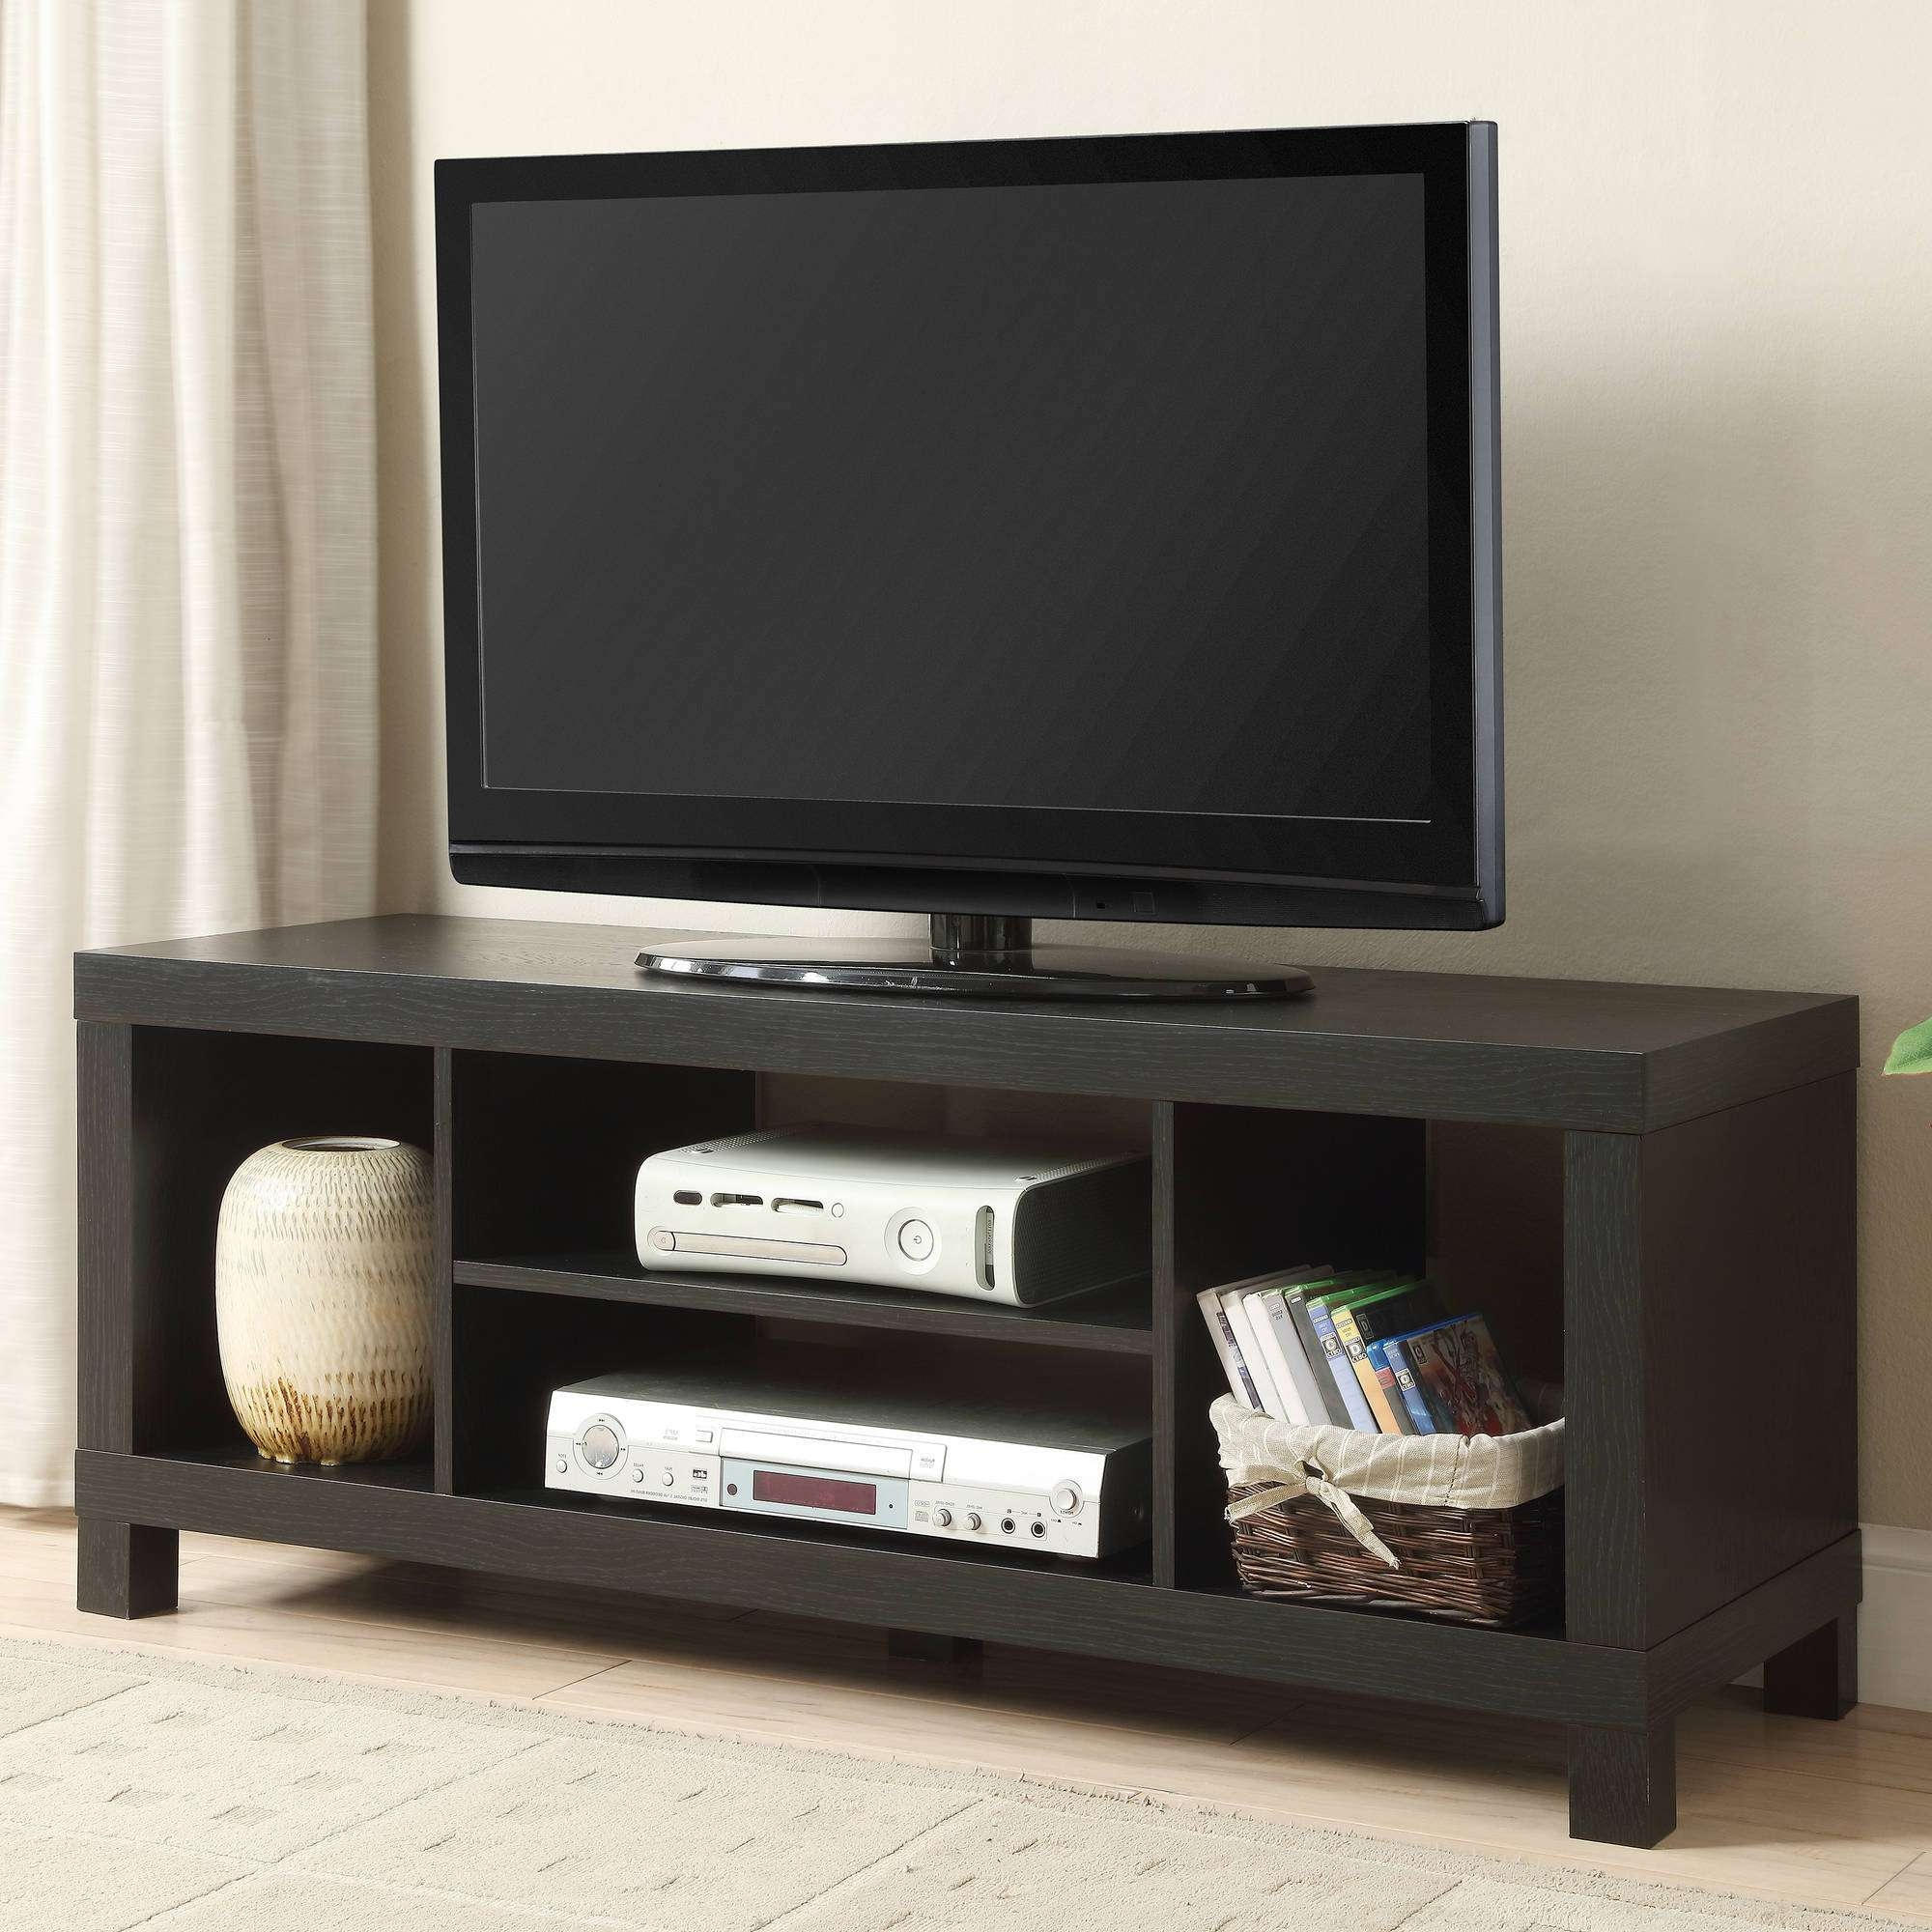 Tv Stands – Walmart In Wooden Tv Stands For 50 Inch Tv (View 9 of 15)